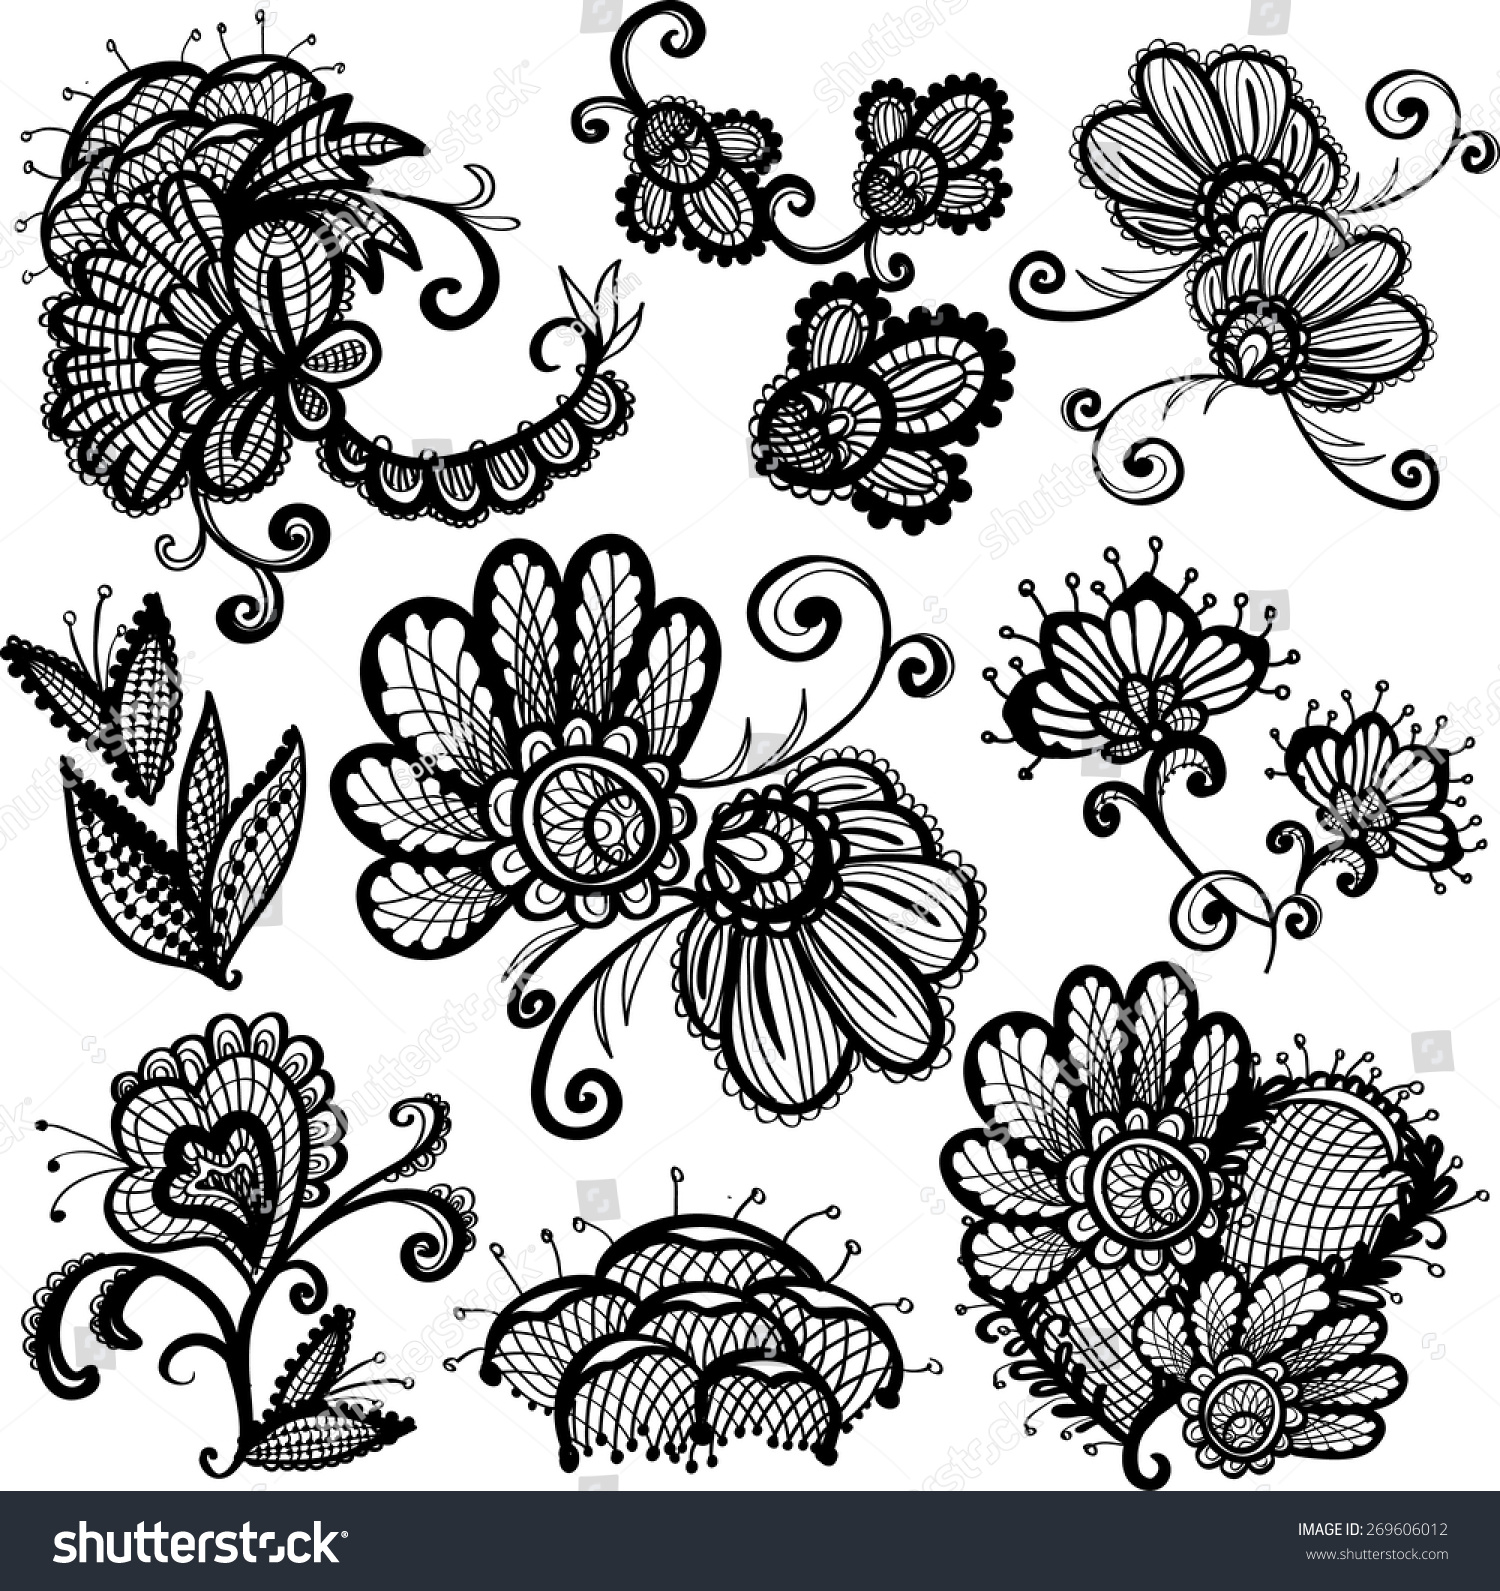 Black Flower Rose From Lace On White Background: Hand Drawn Graphic Vintage Black Line Lace Flower, Peony